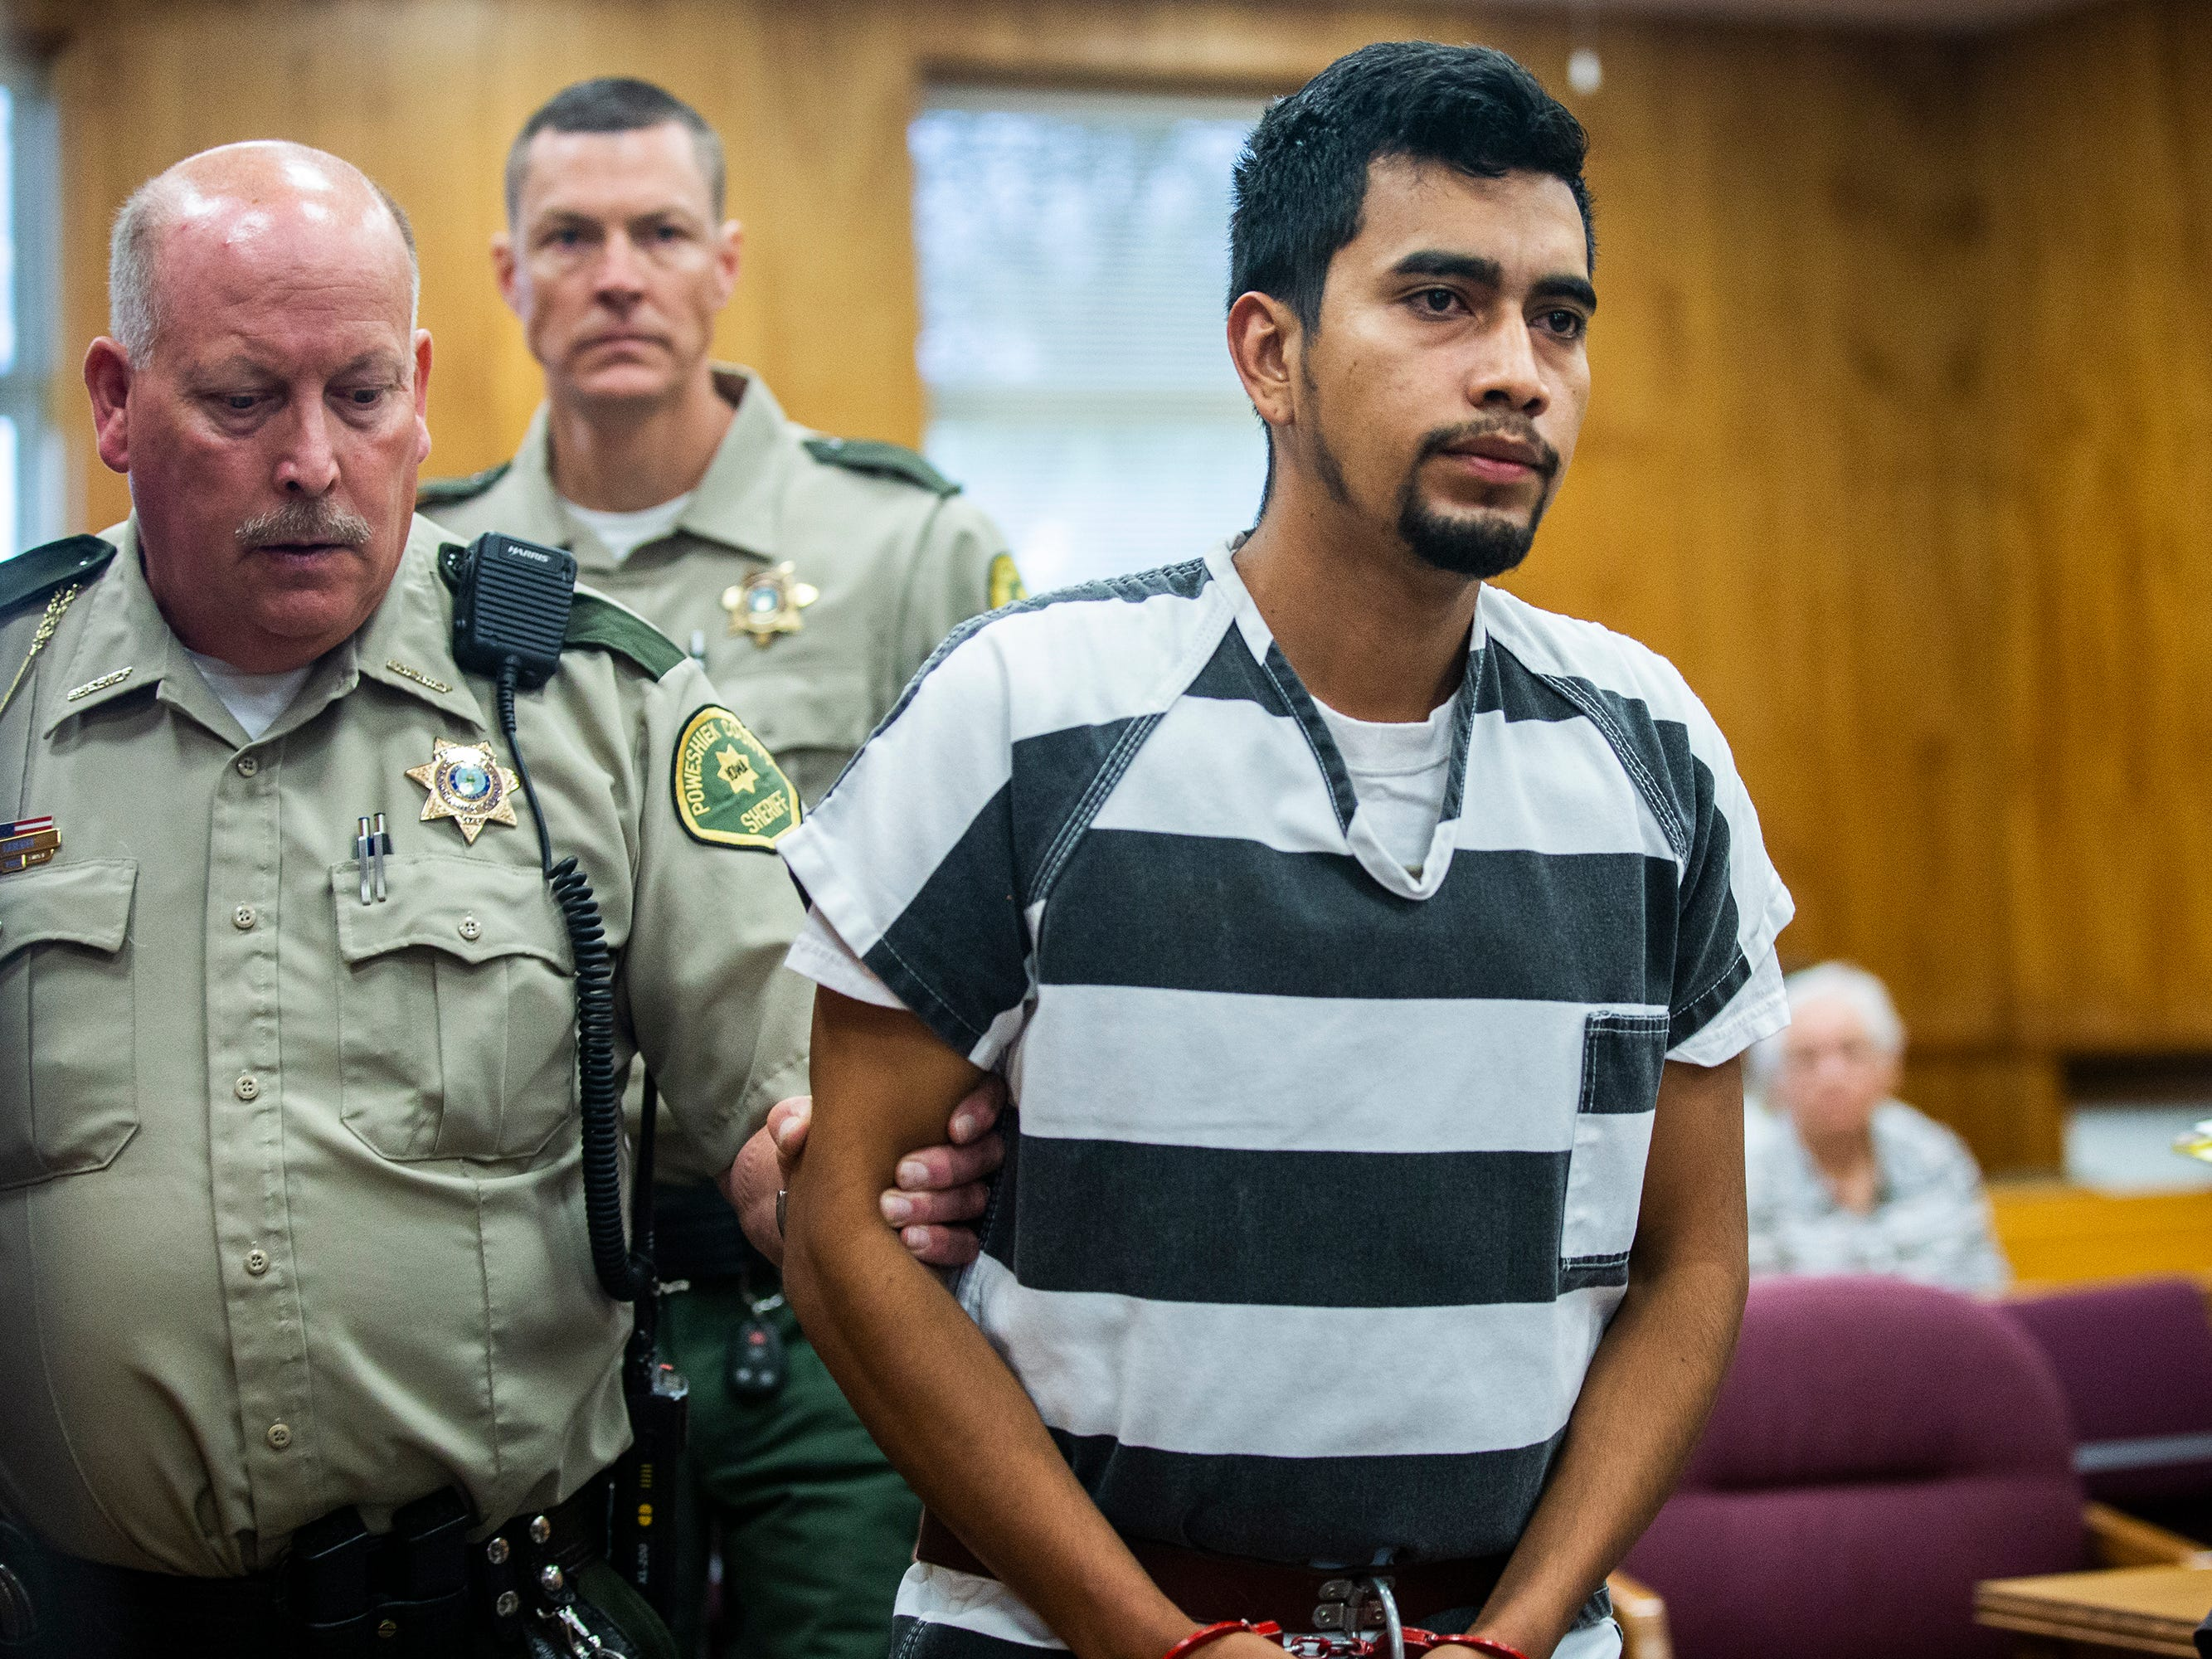 Prosecutors join defense attorneys in calling for trial to be held in different county for man accused of killing Mollie Tibbetts